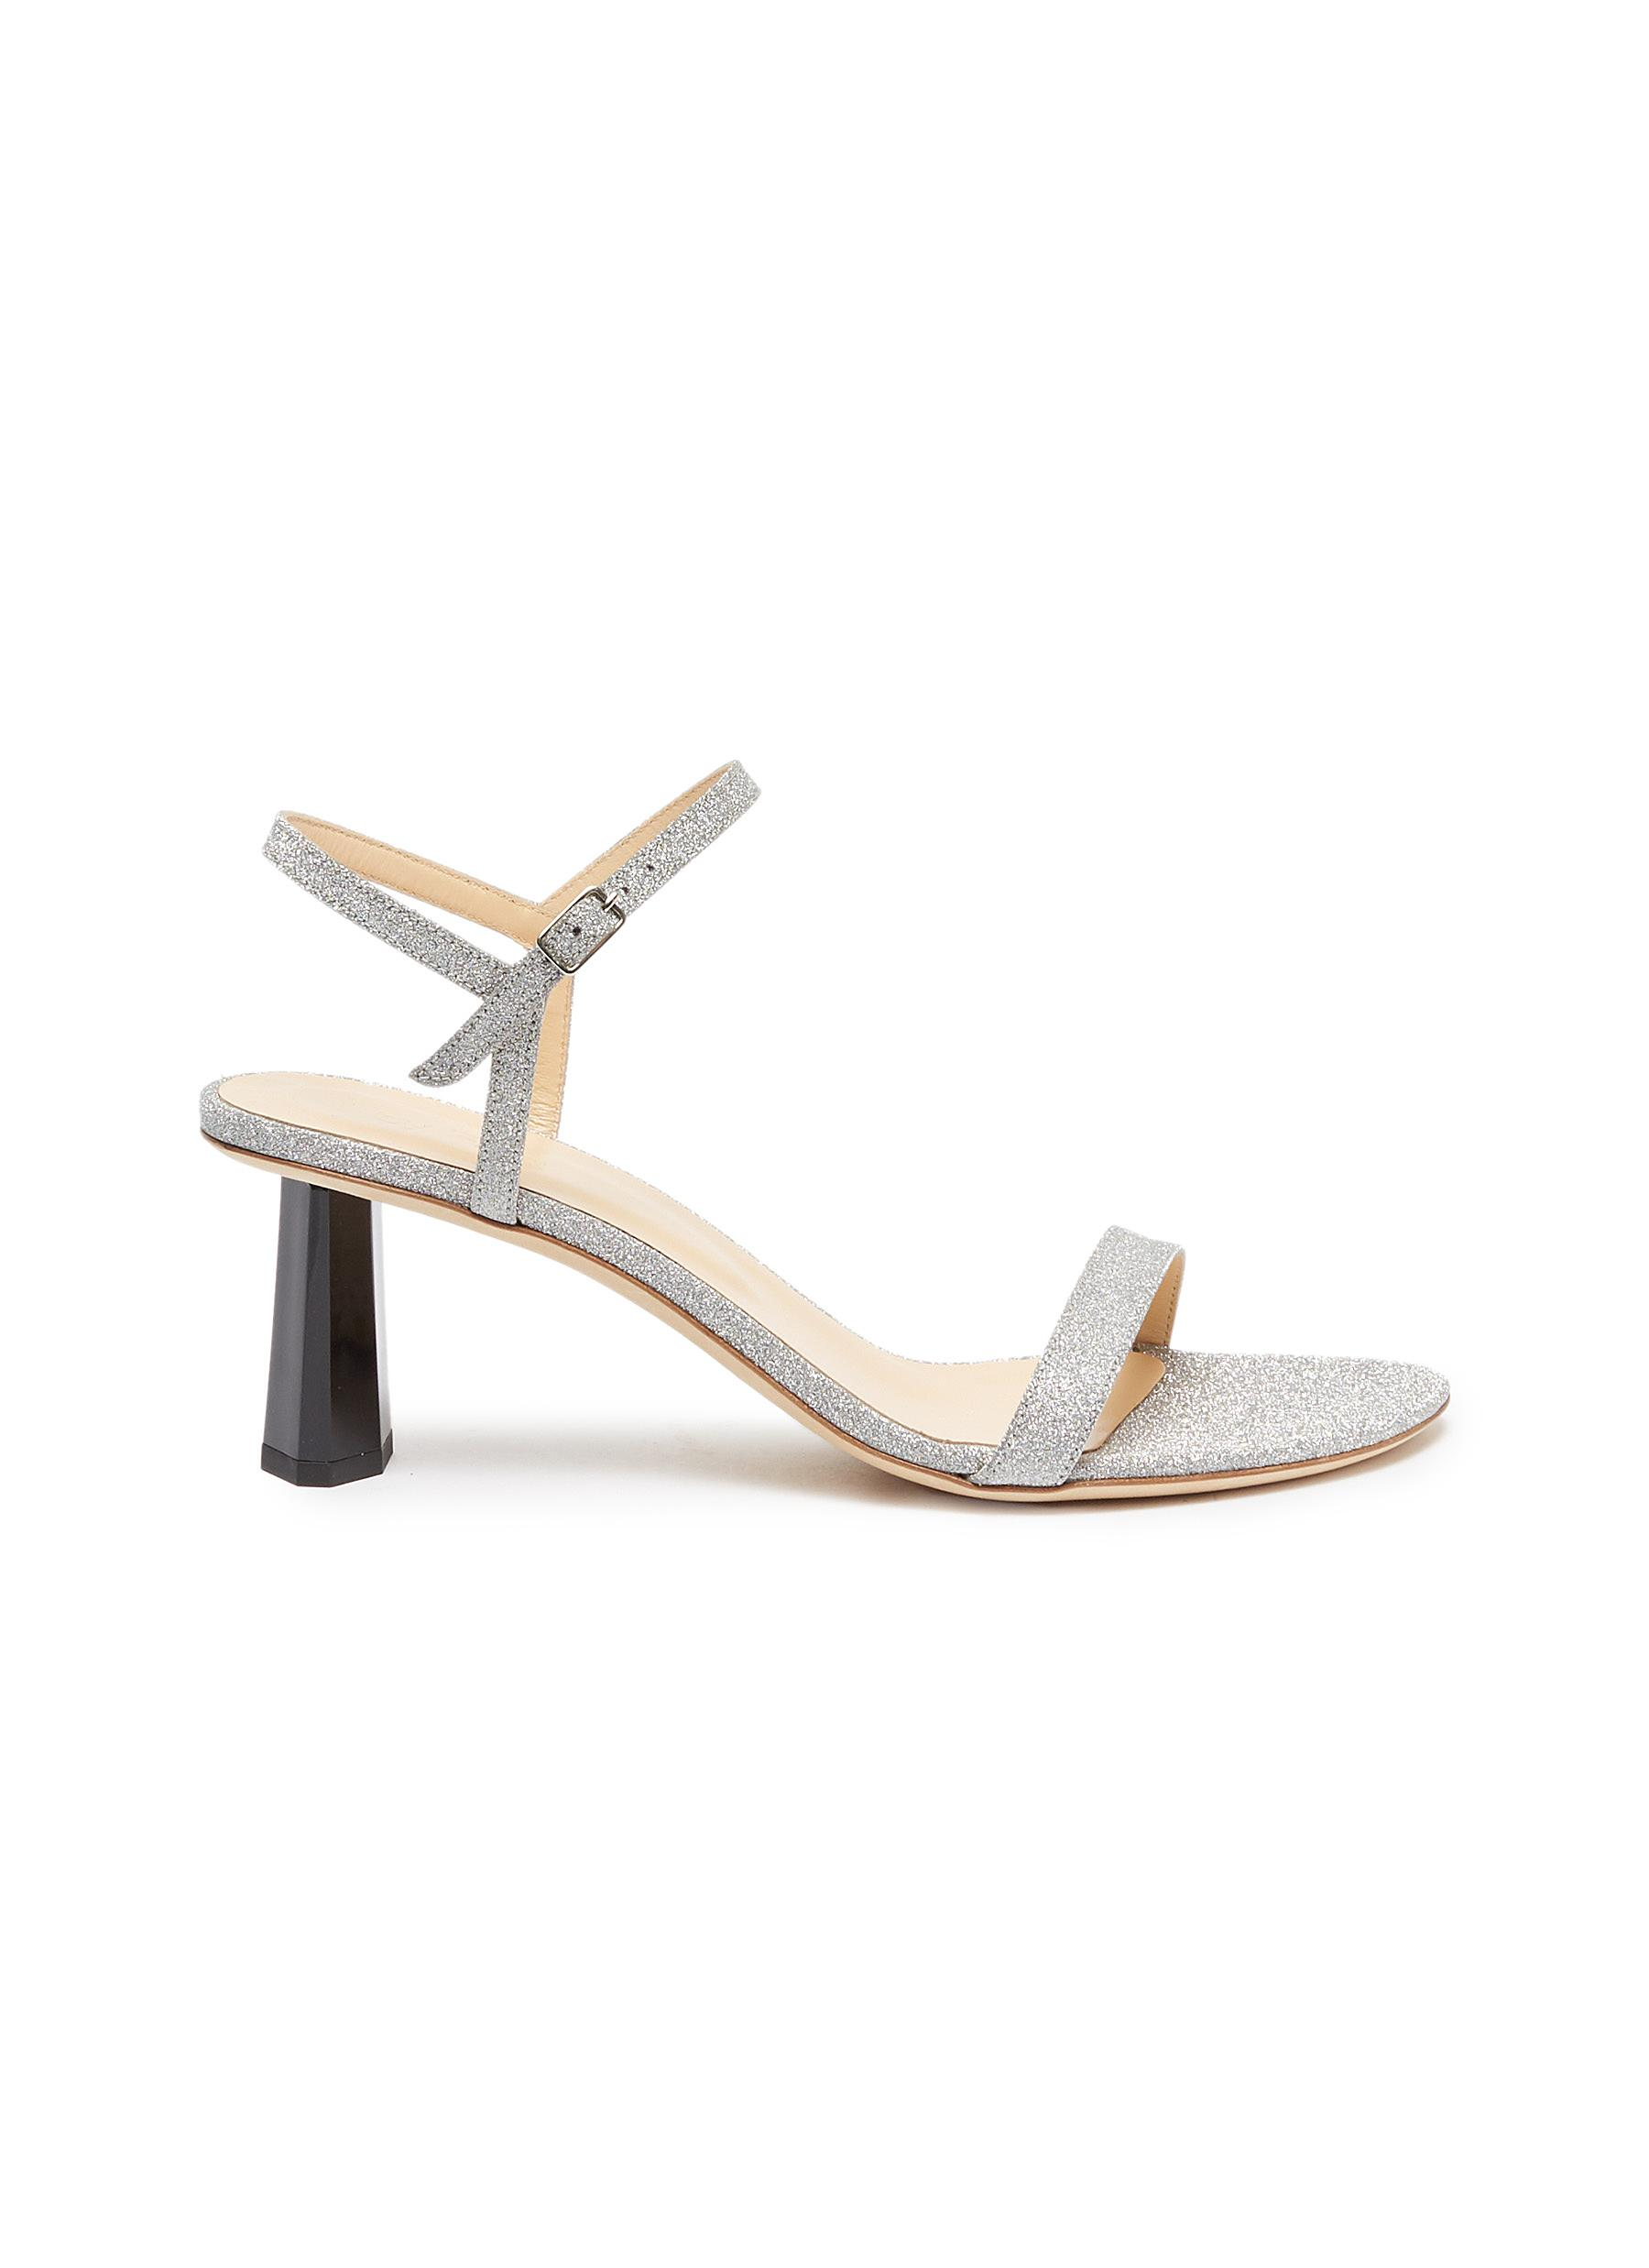 Magnolia ankle strap glitter sandals by By Far